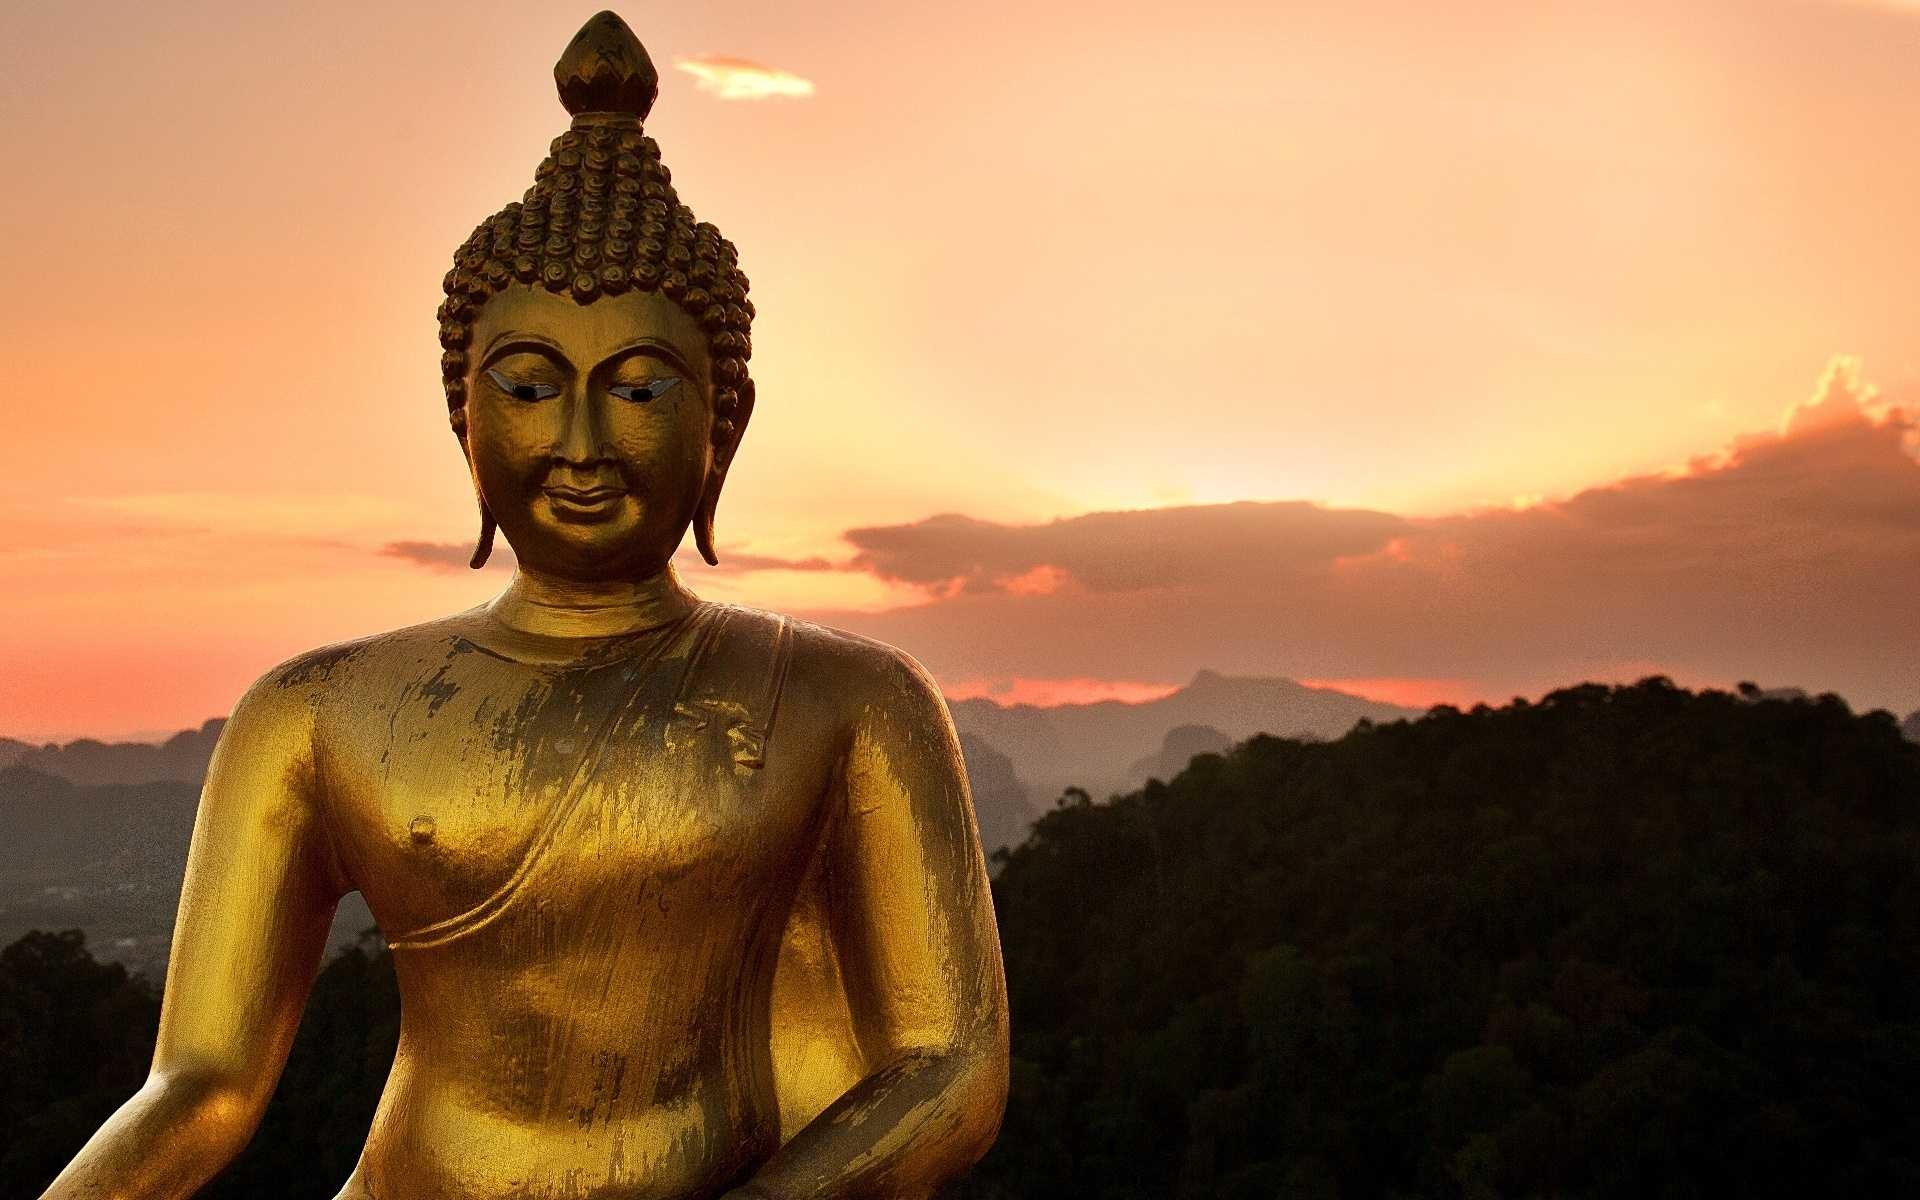 Buddha wallpaper for desktop and mobile in high resolution download. We  have best collection of lord Buddha images & Gautama Buddha hd wallpapers w…